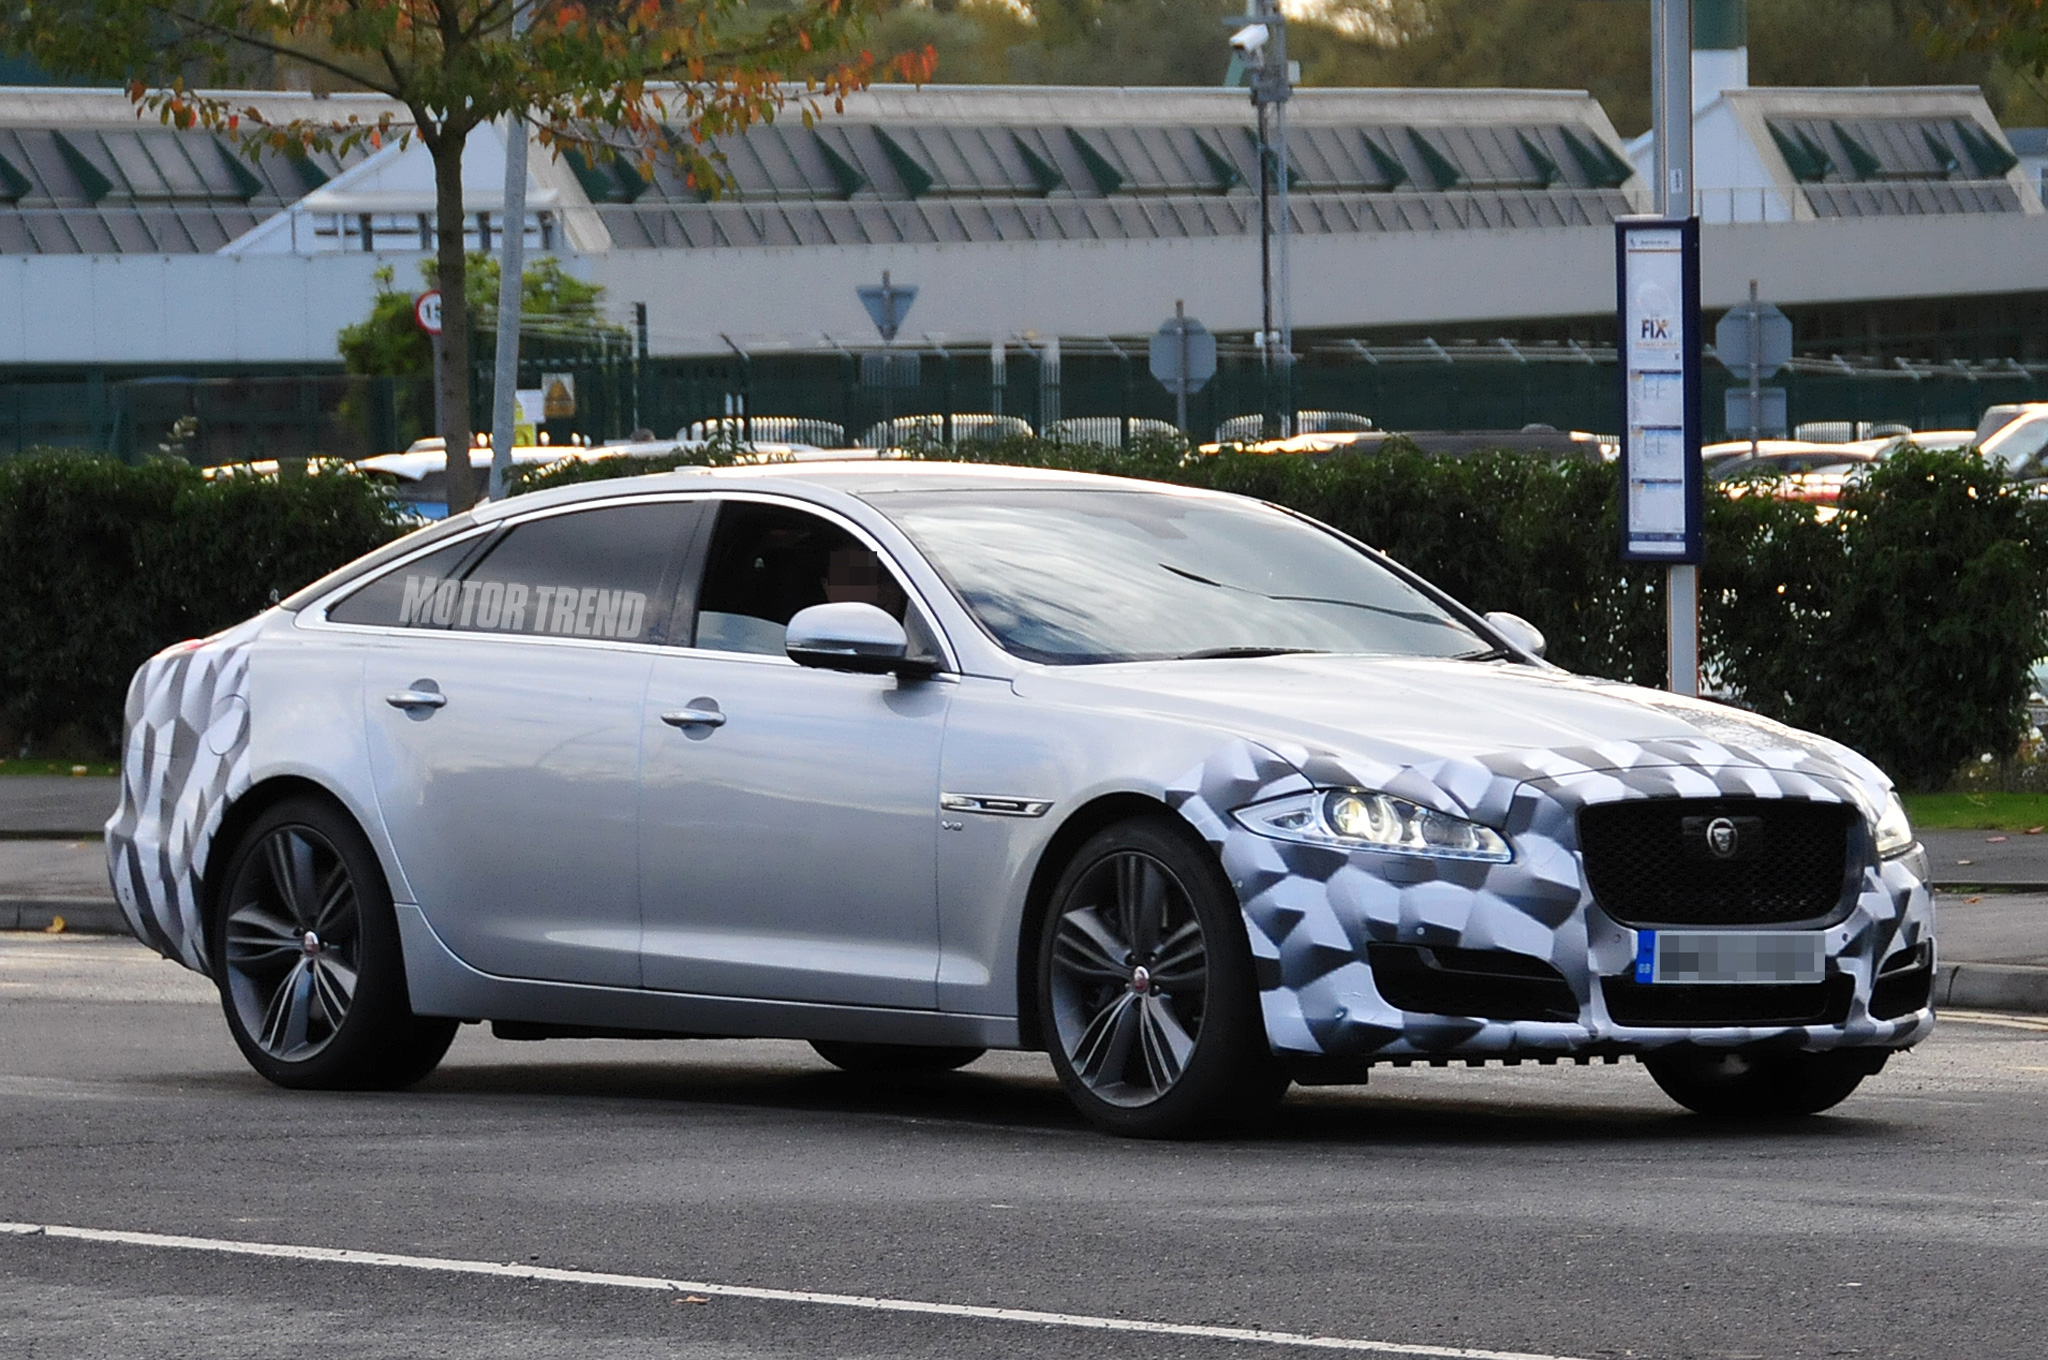 Spied: Refreshed Jaguar XJ Hides Face-Lifted Exterior